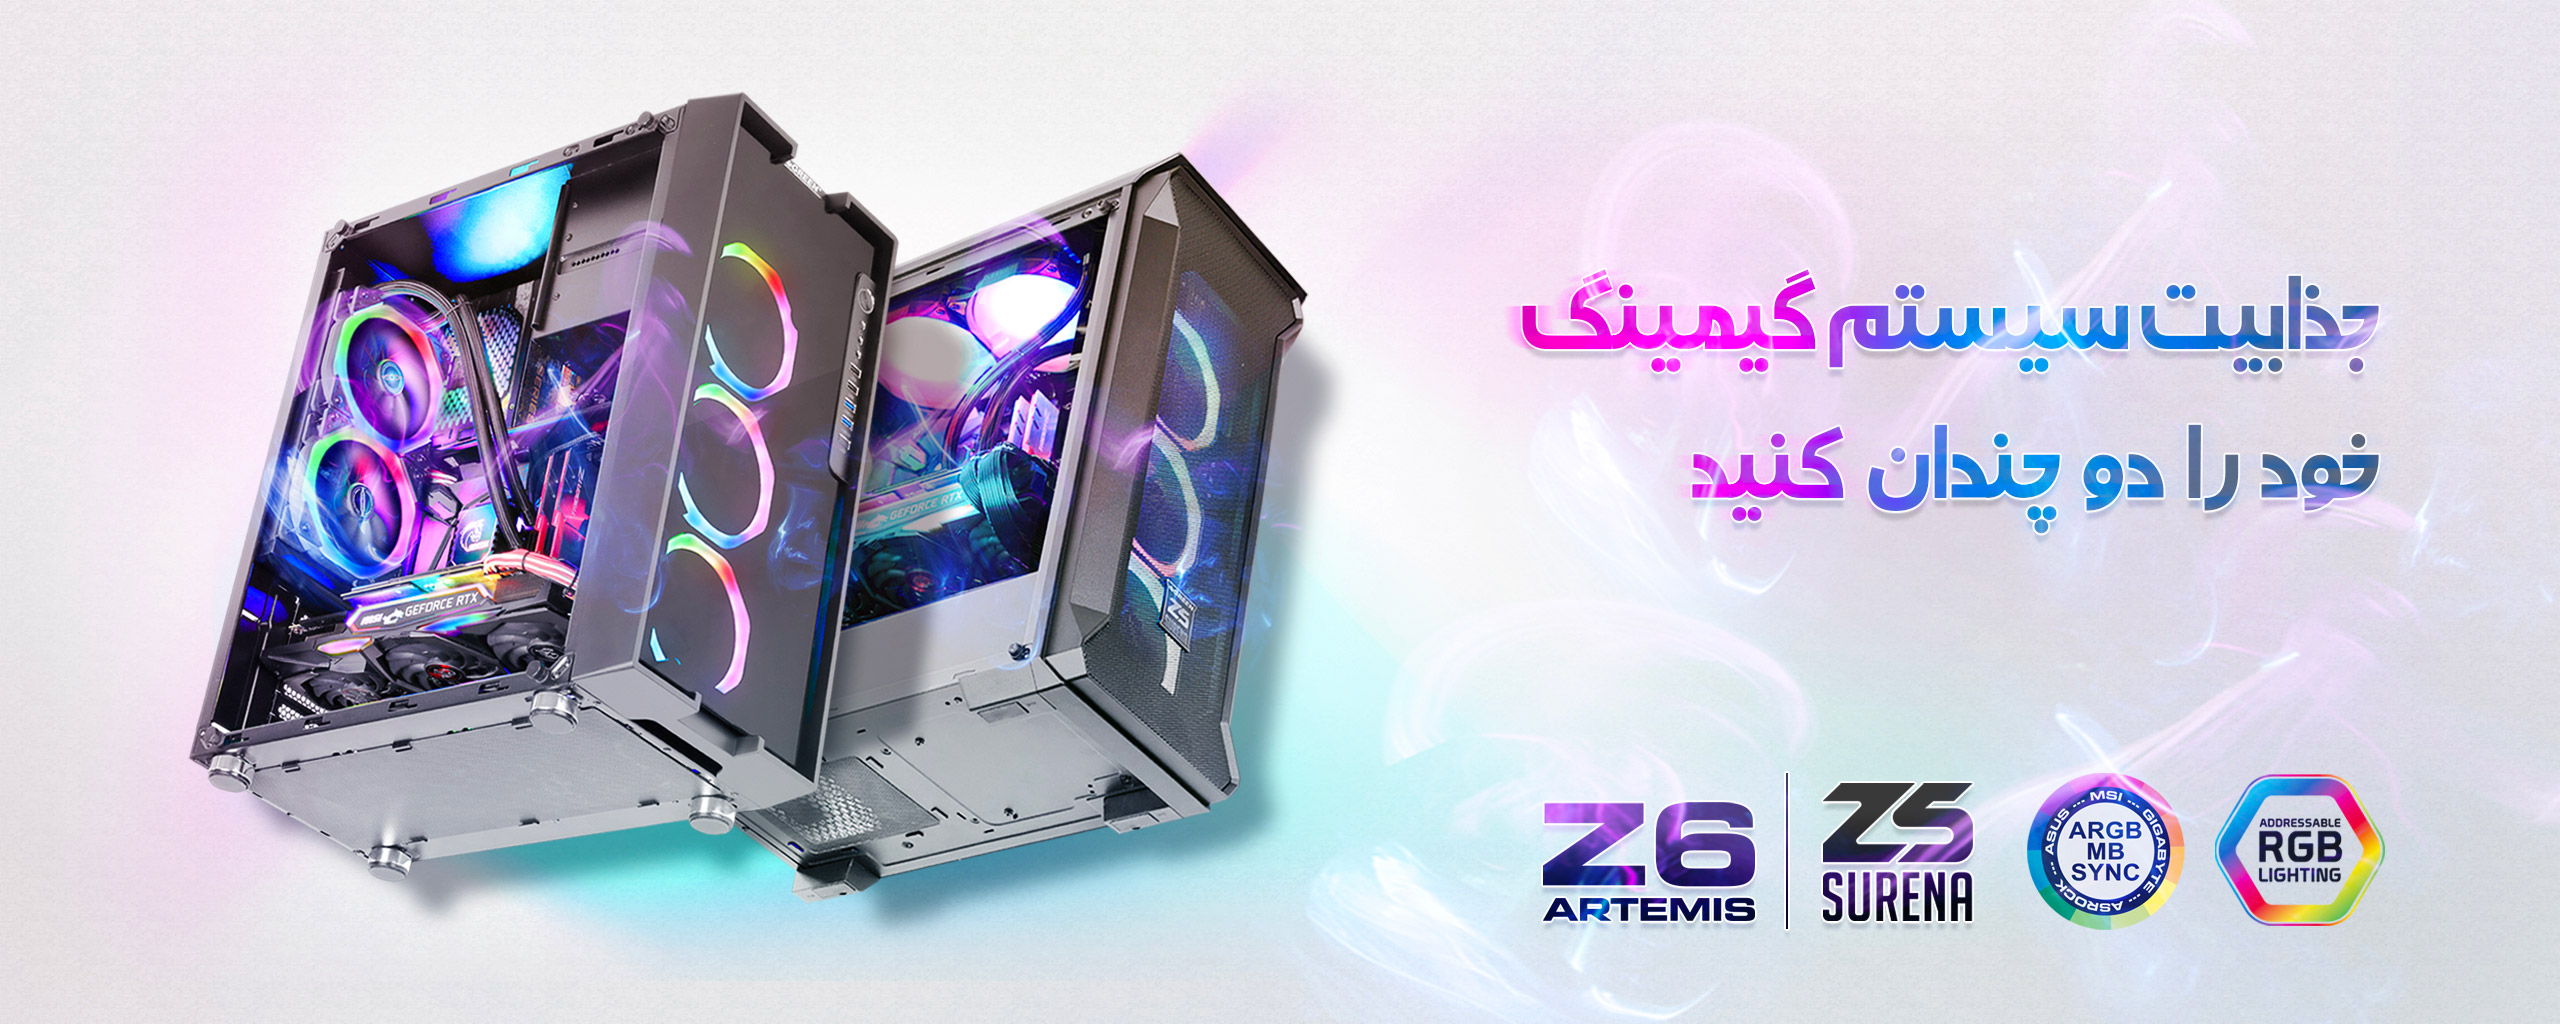 GREEN-Z5-Z6-Gaming-Cases2